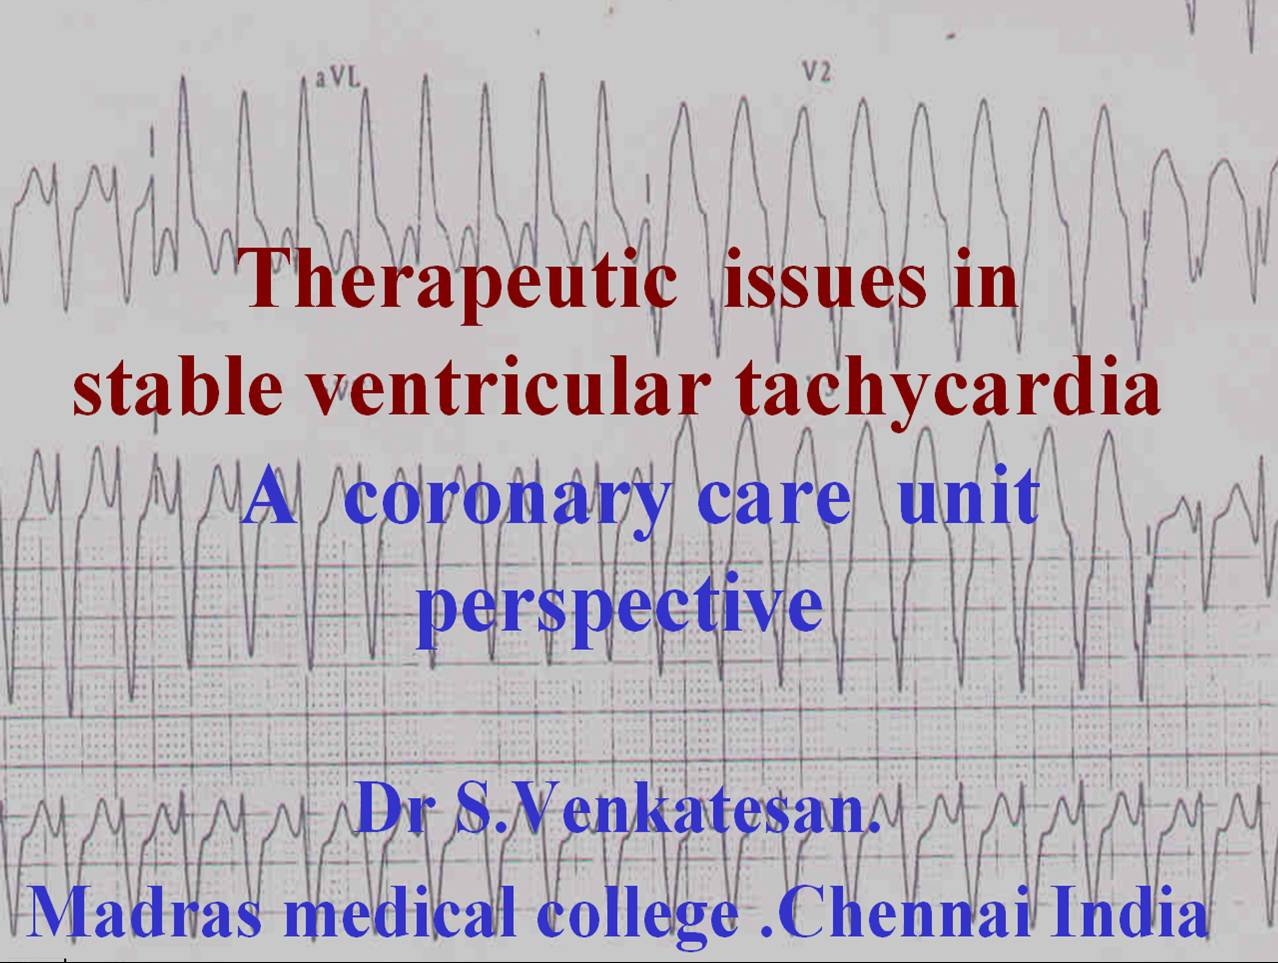 vtvt-therapeutic-issues1